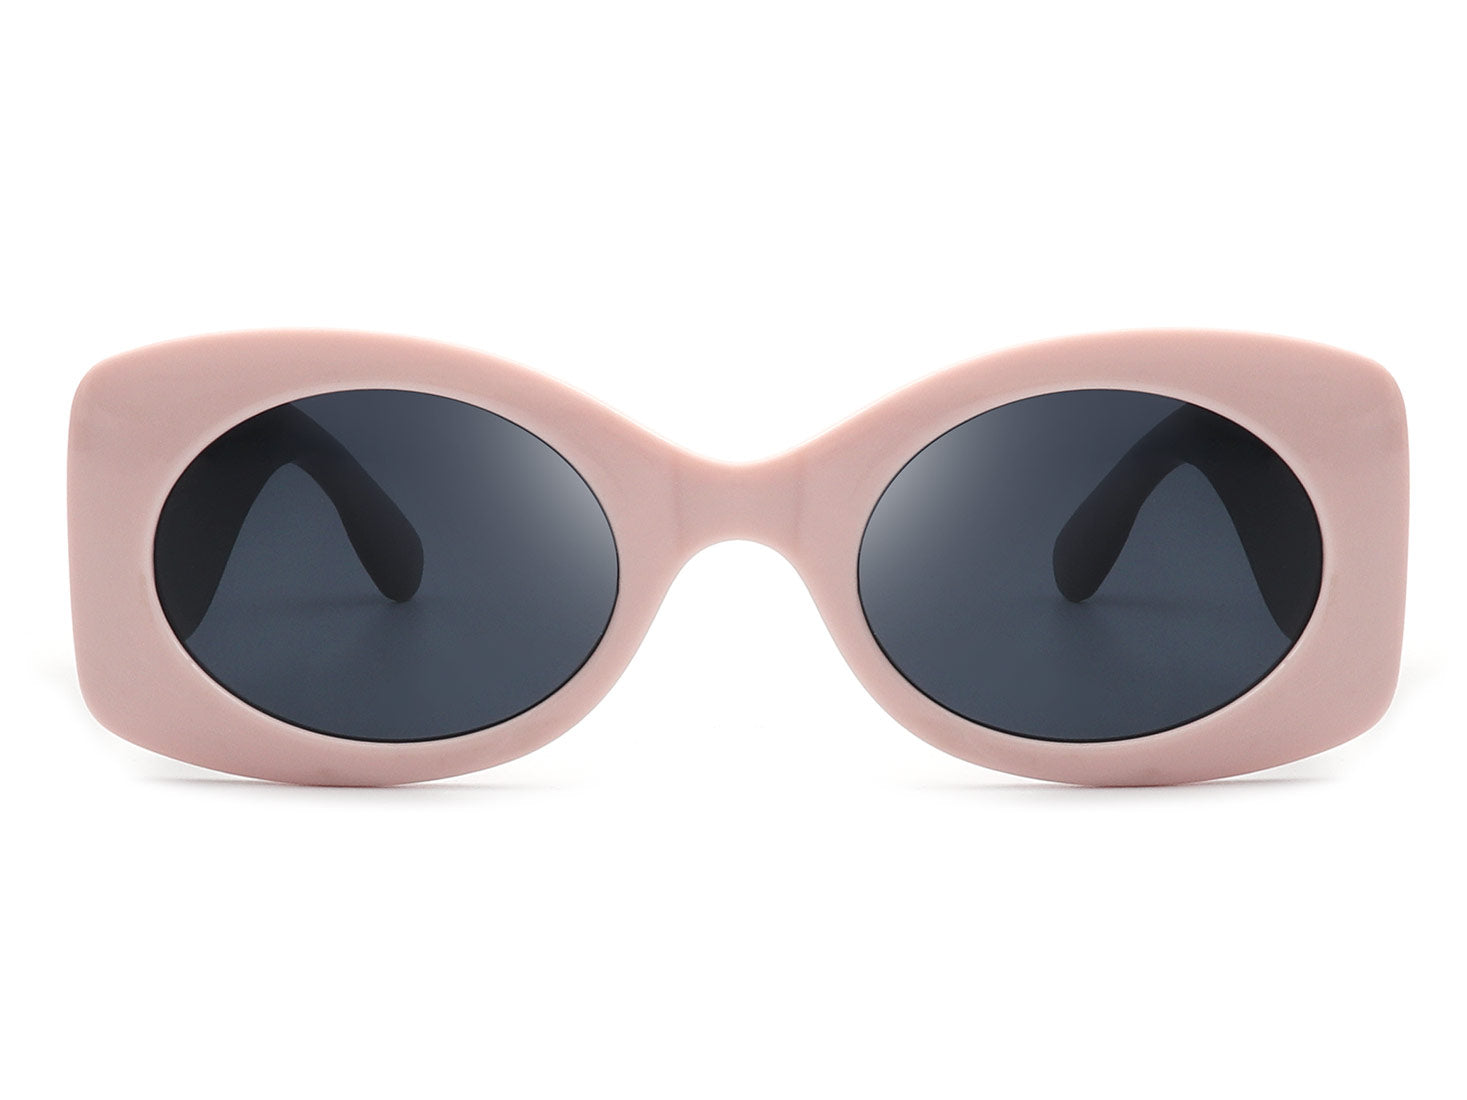 HS1031 - Retro Round Oval Bold Vintage Fashion Sunglasses